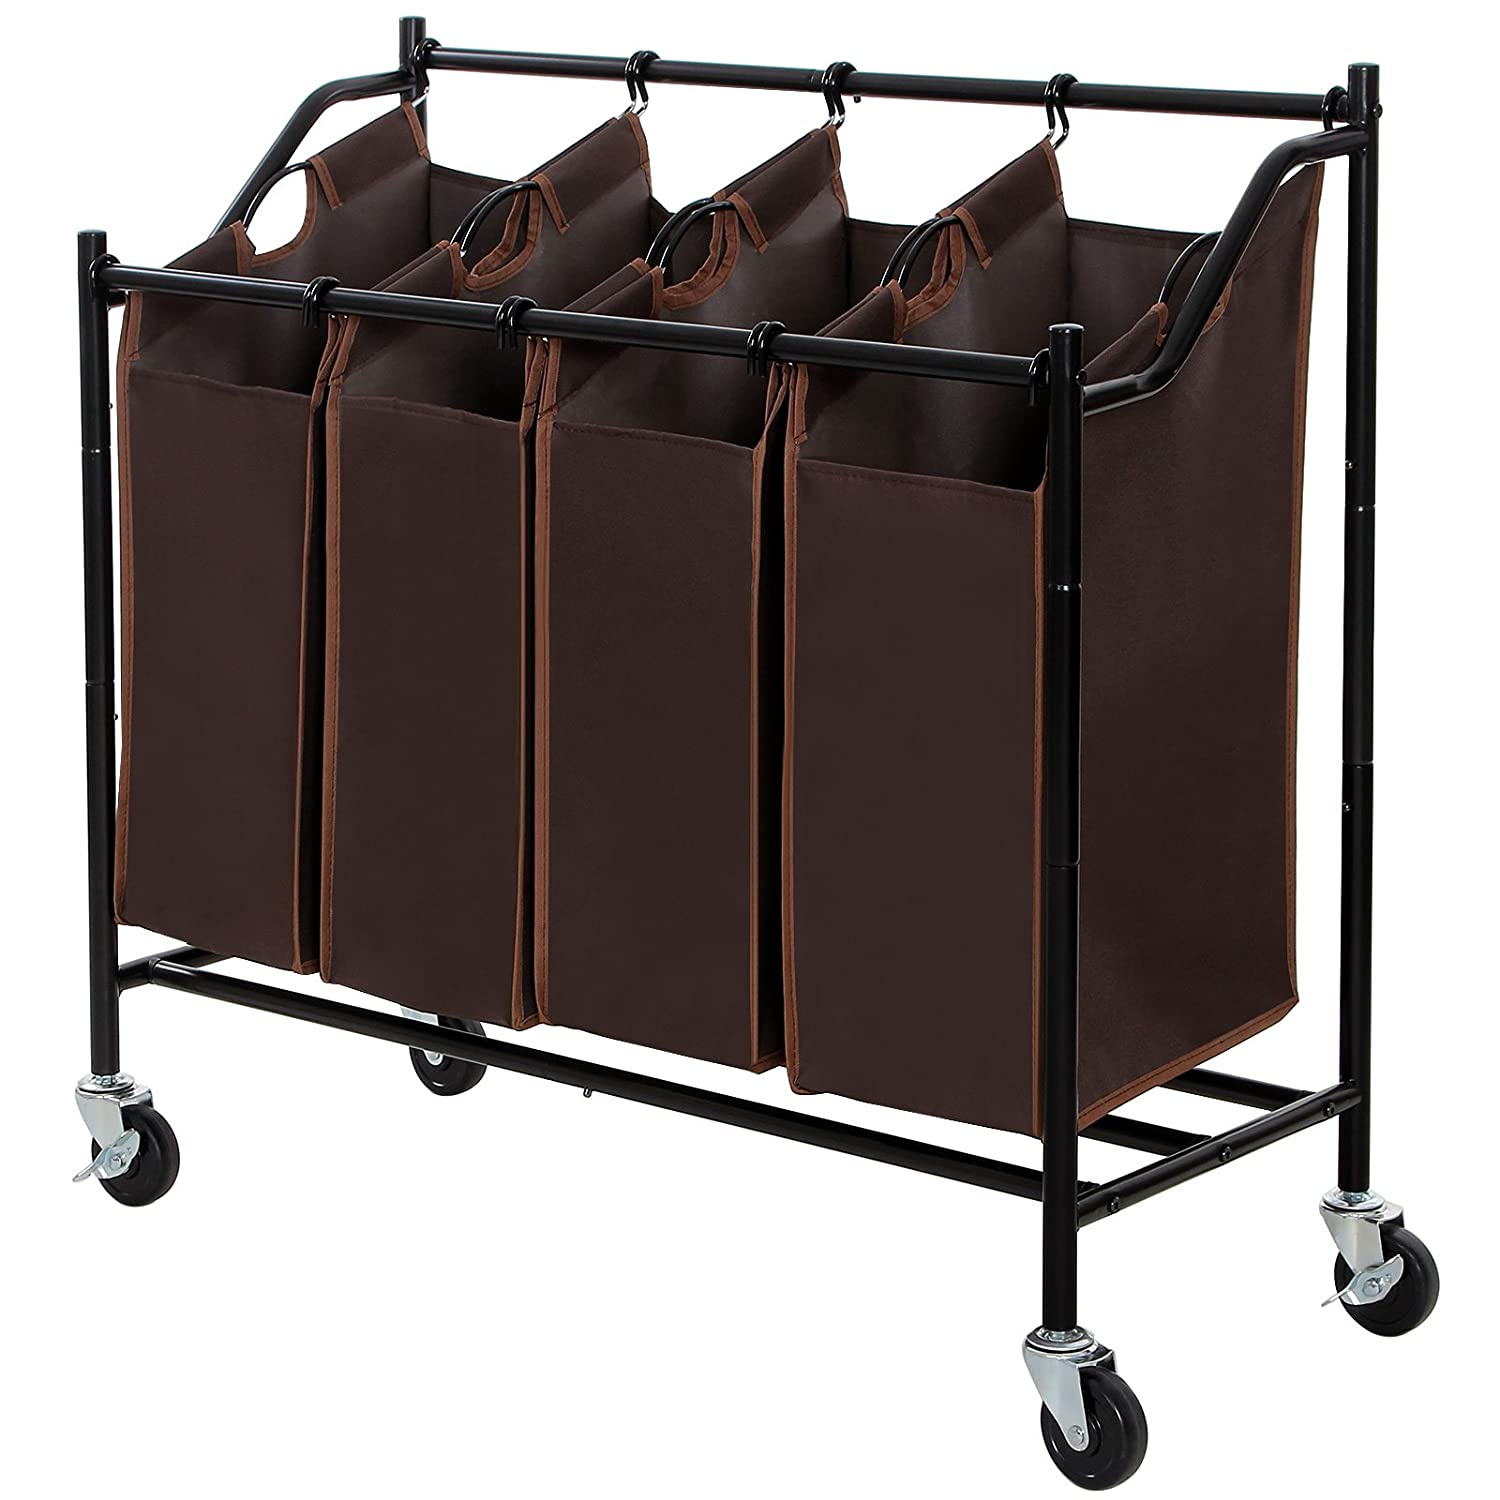 SONGMICS 4-Bag Rolling Laundry Sorter Cart Heavy-Duty Sorting Hamper W'Brake Casters Brown URLS90Z